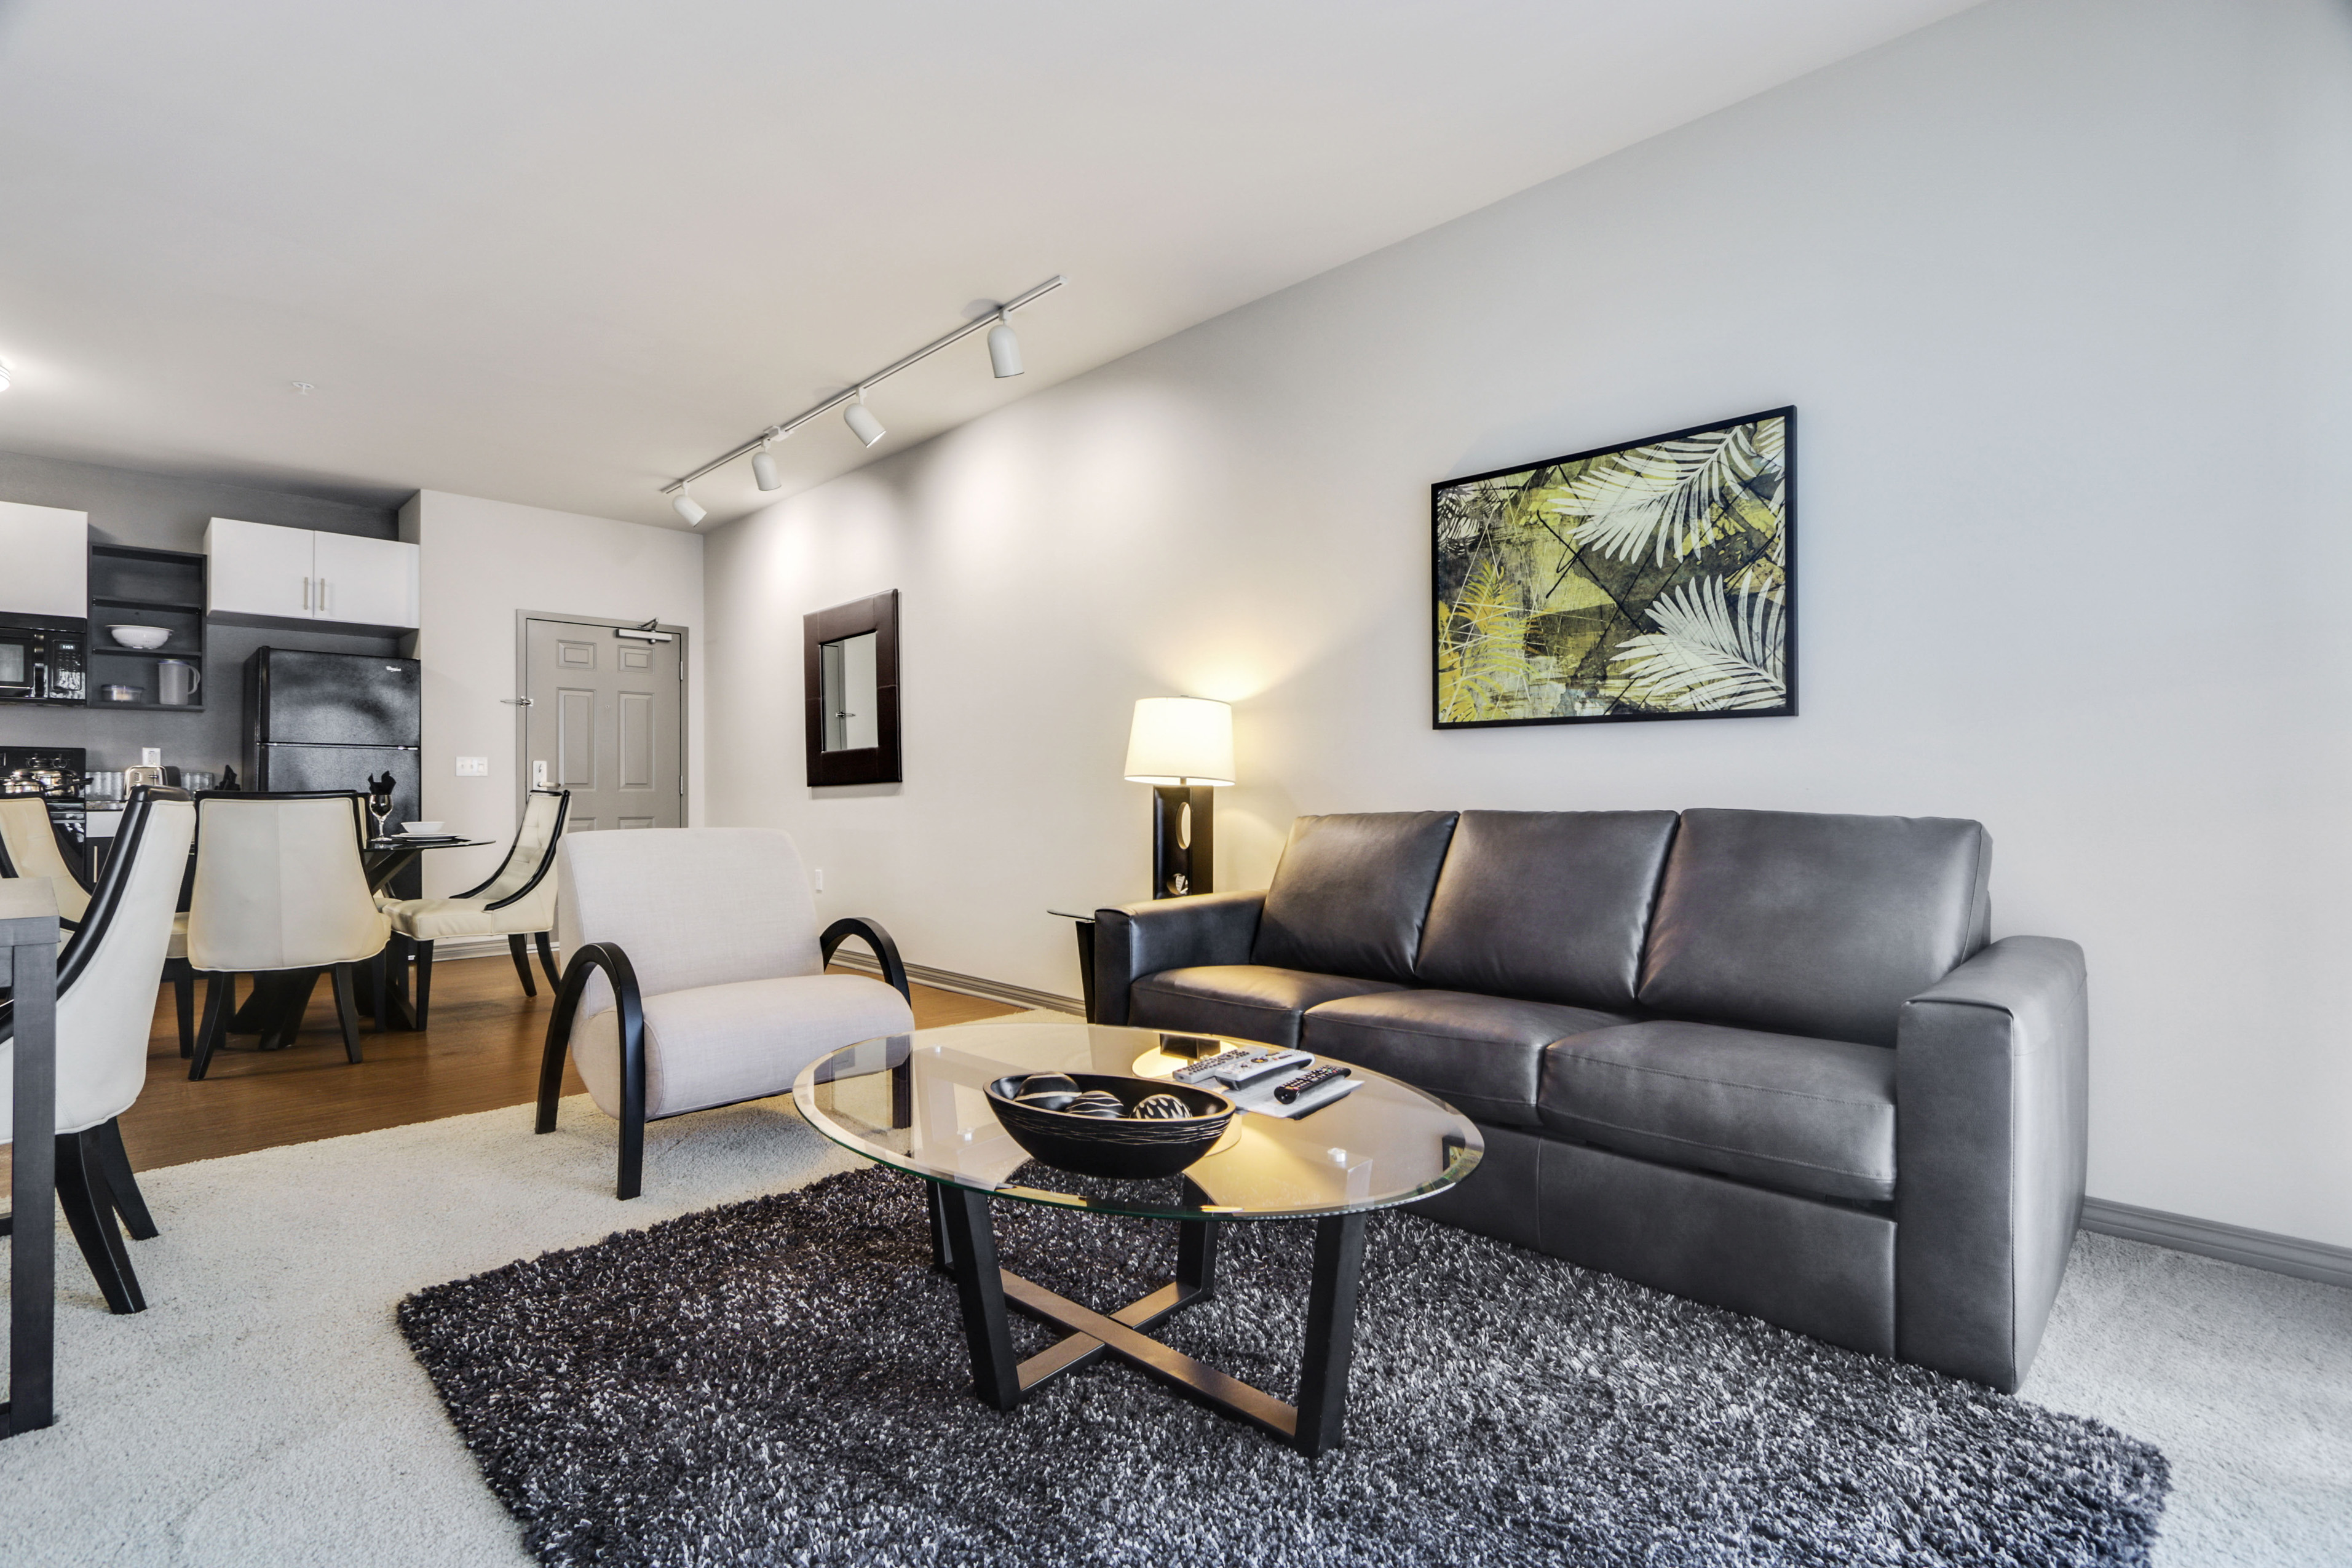 image 4 furnished 1 bedroom Apartment for rent in Marina del Rey, West Los Angeles